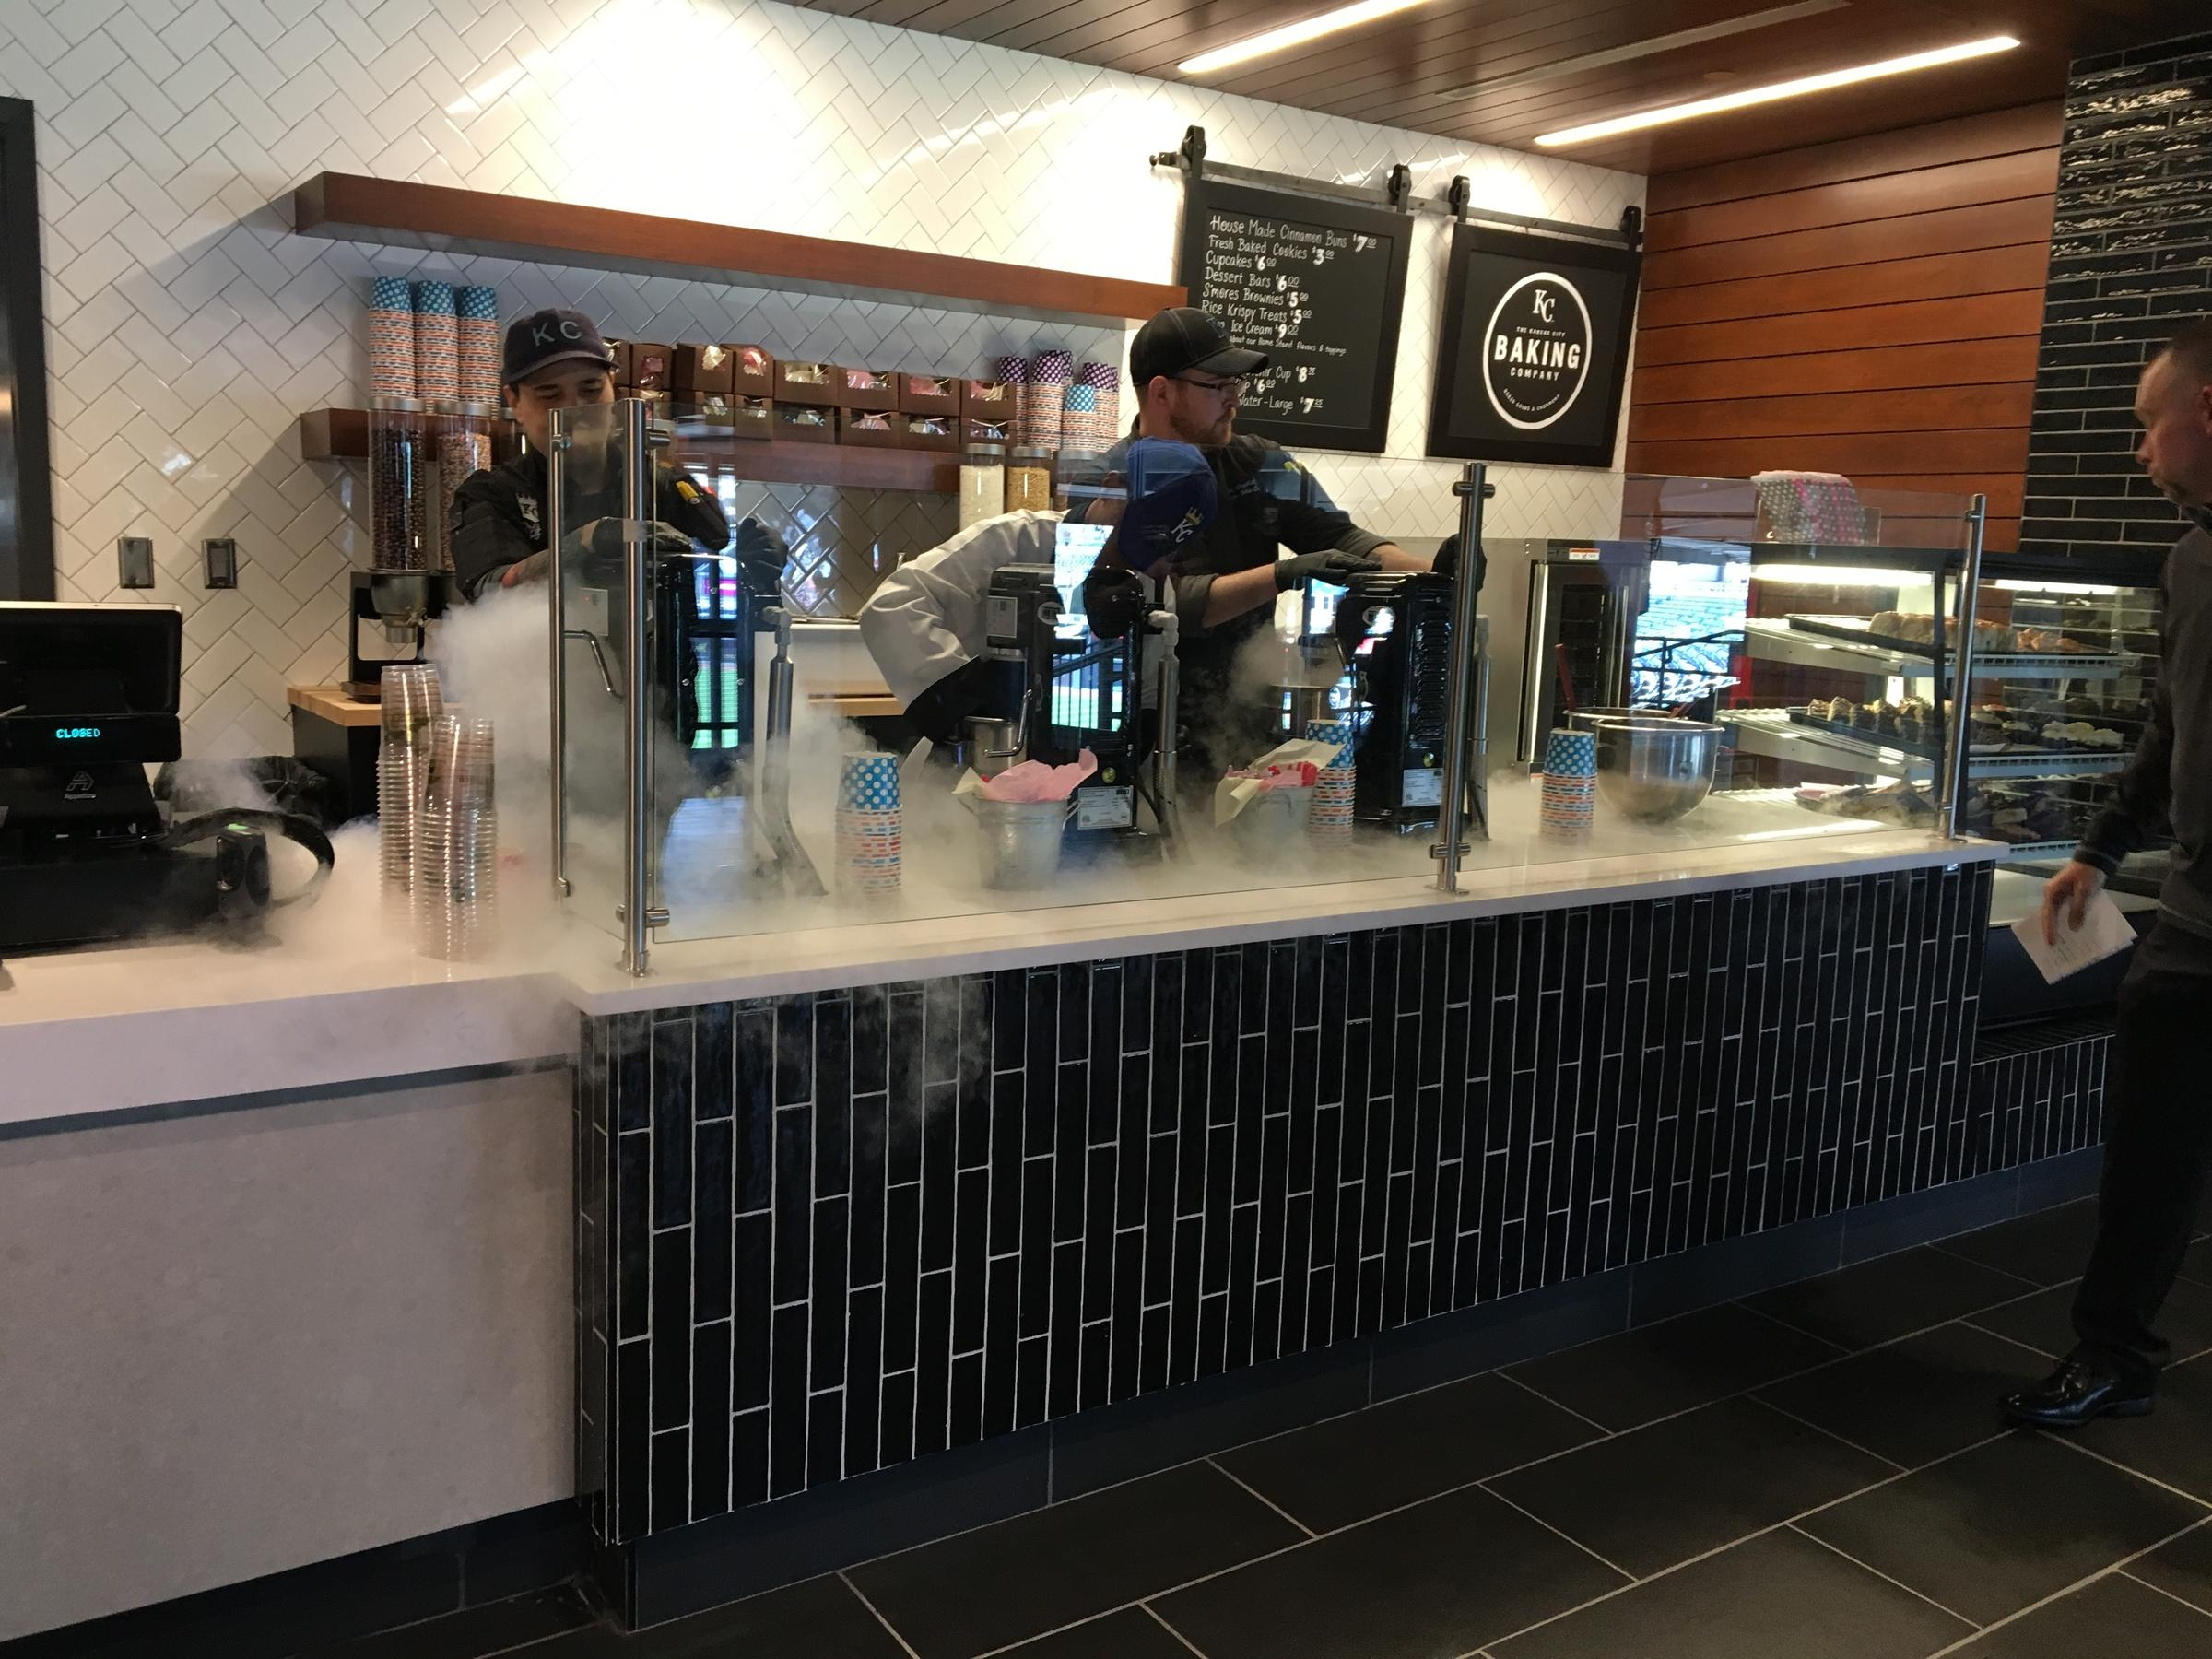 The Kansas City Baking Co. located in the Diamond Club at Kauffman Stadium makes ice cream chilled in 30 seconds with liquid nitrogen